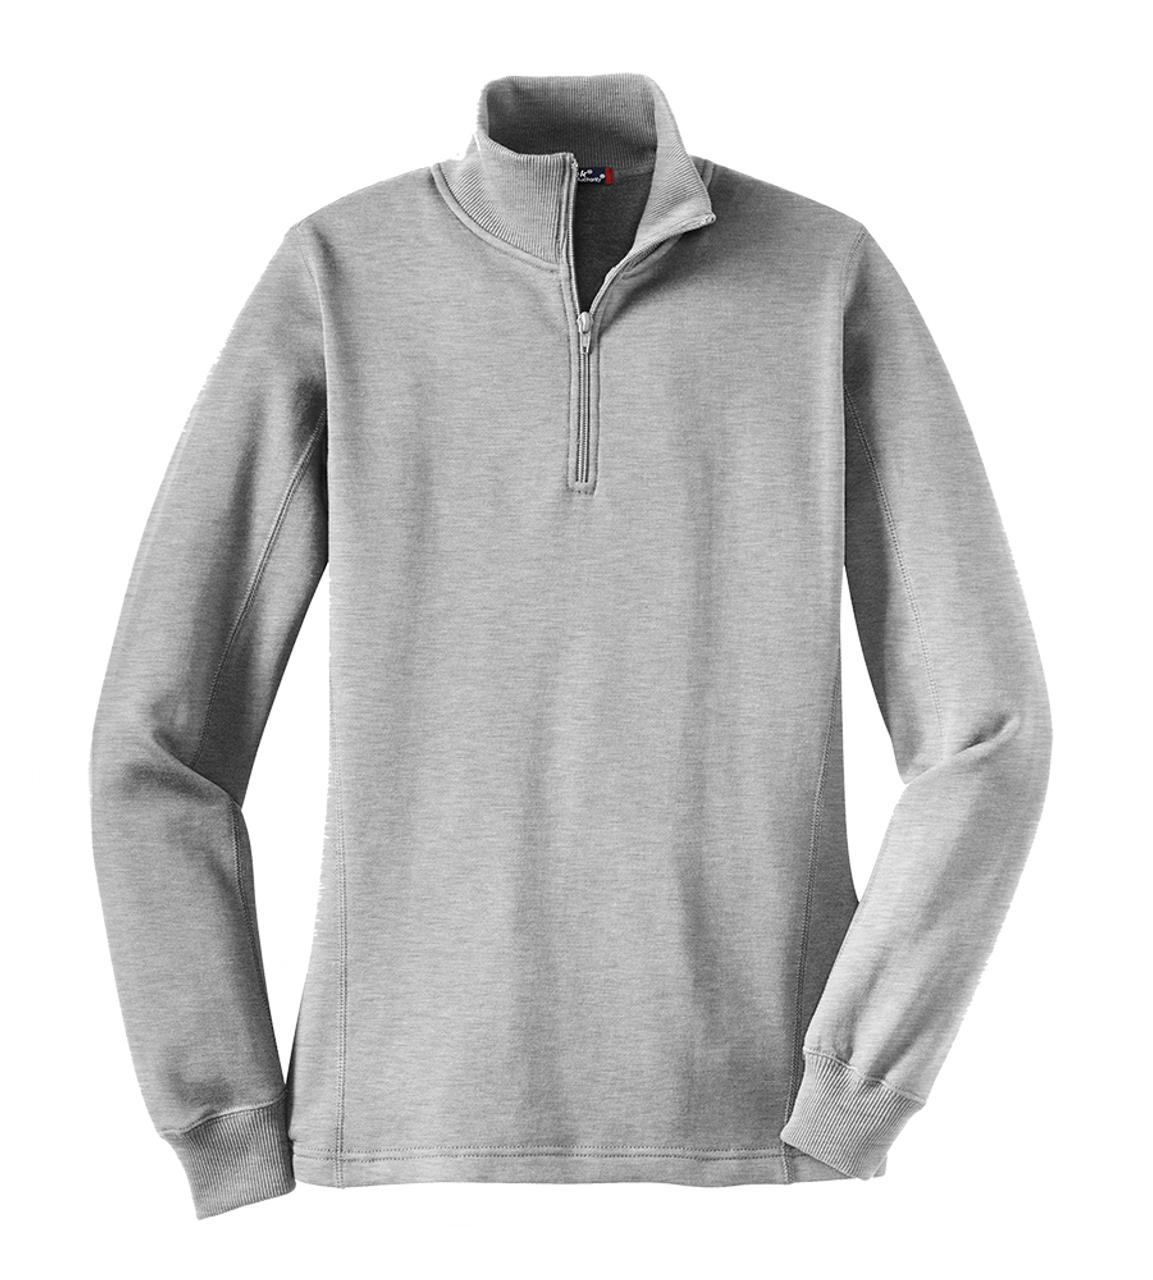 LST253 in Athletic Heather